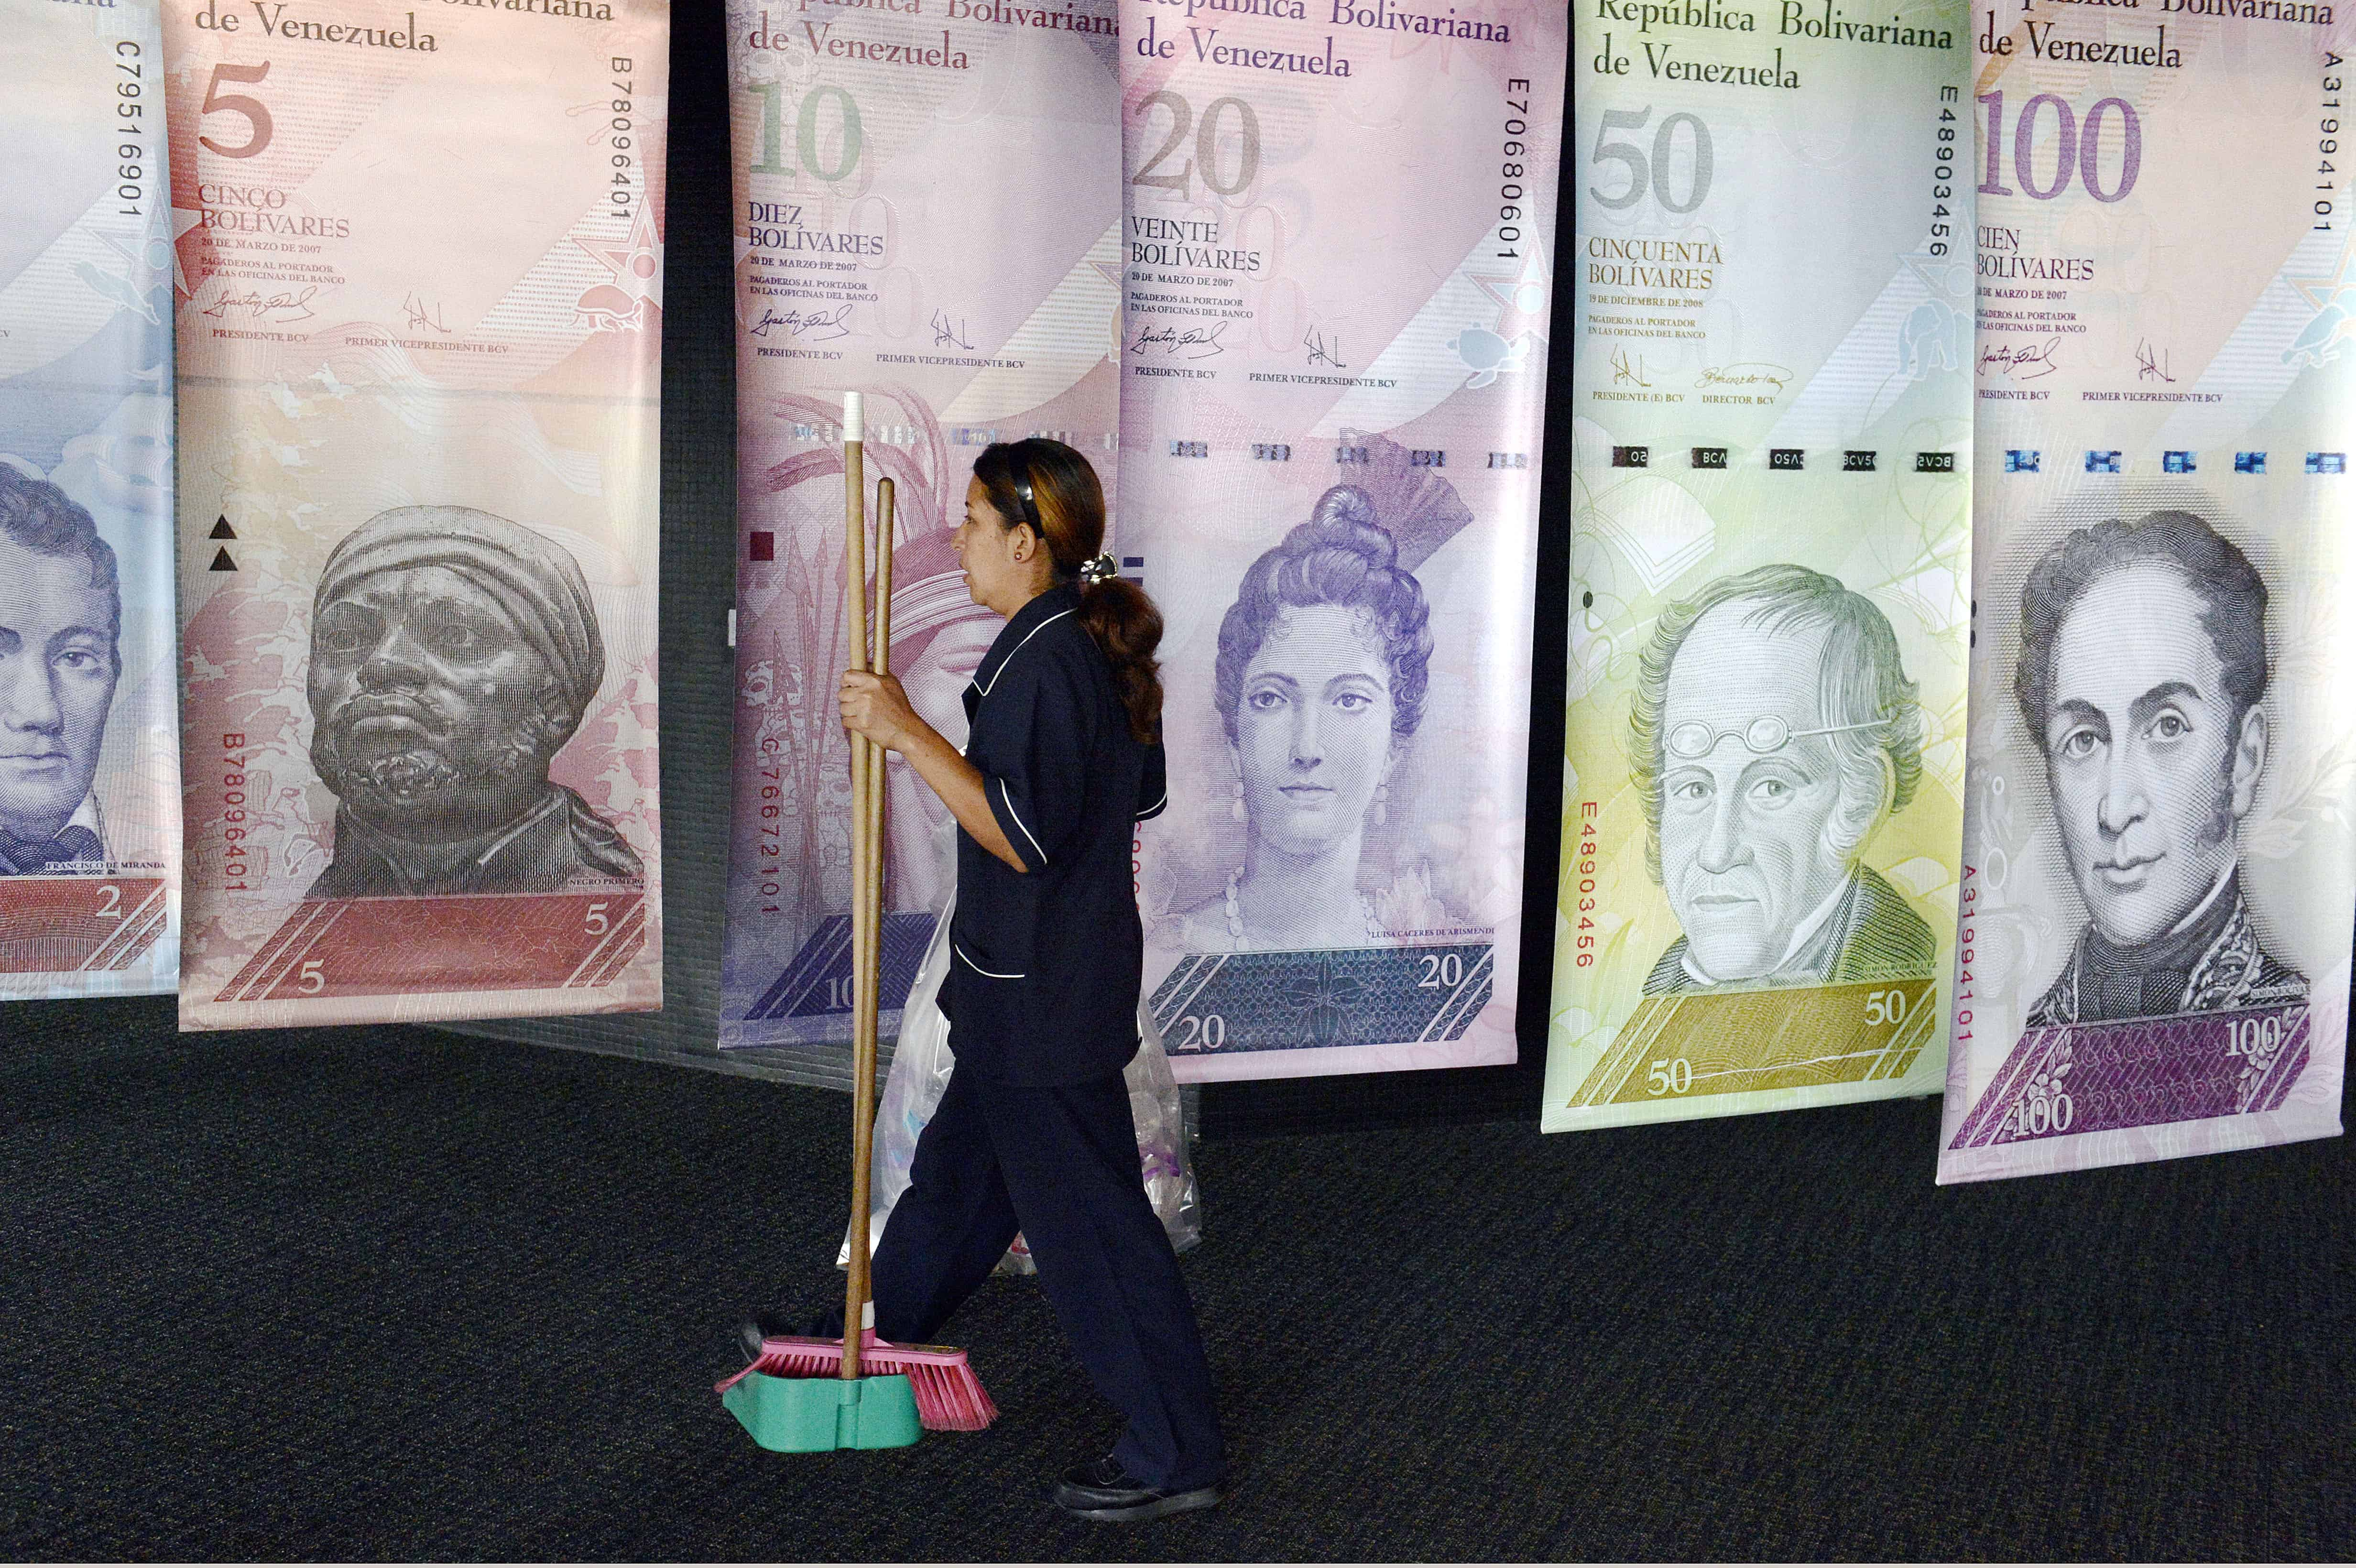 A woman walks past banners portraying the Venezuelan currency, the Bolivar, at the Venezuelan Central Bank in Caracas on February 10, 2015.